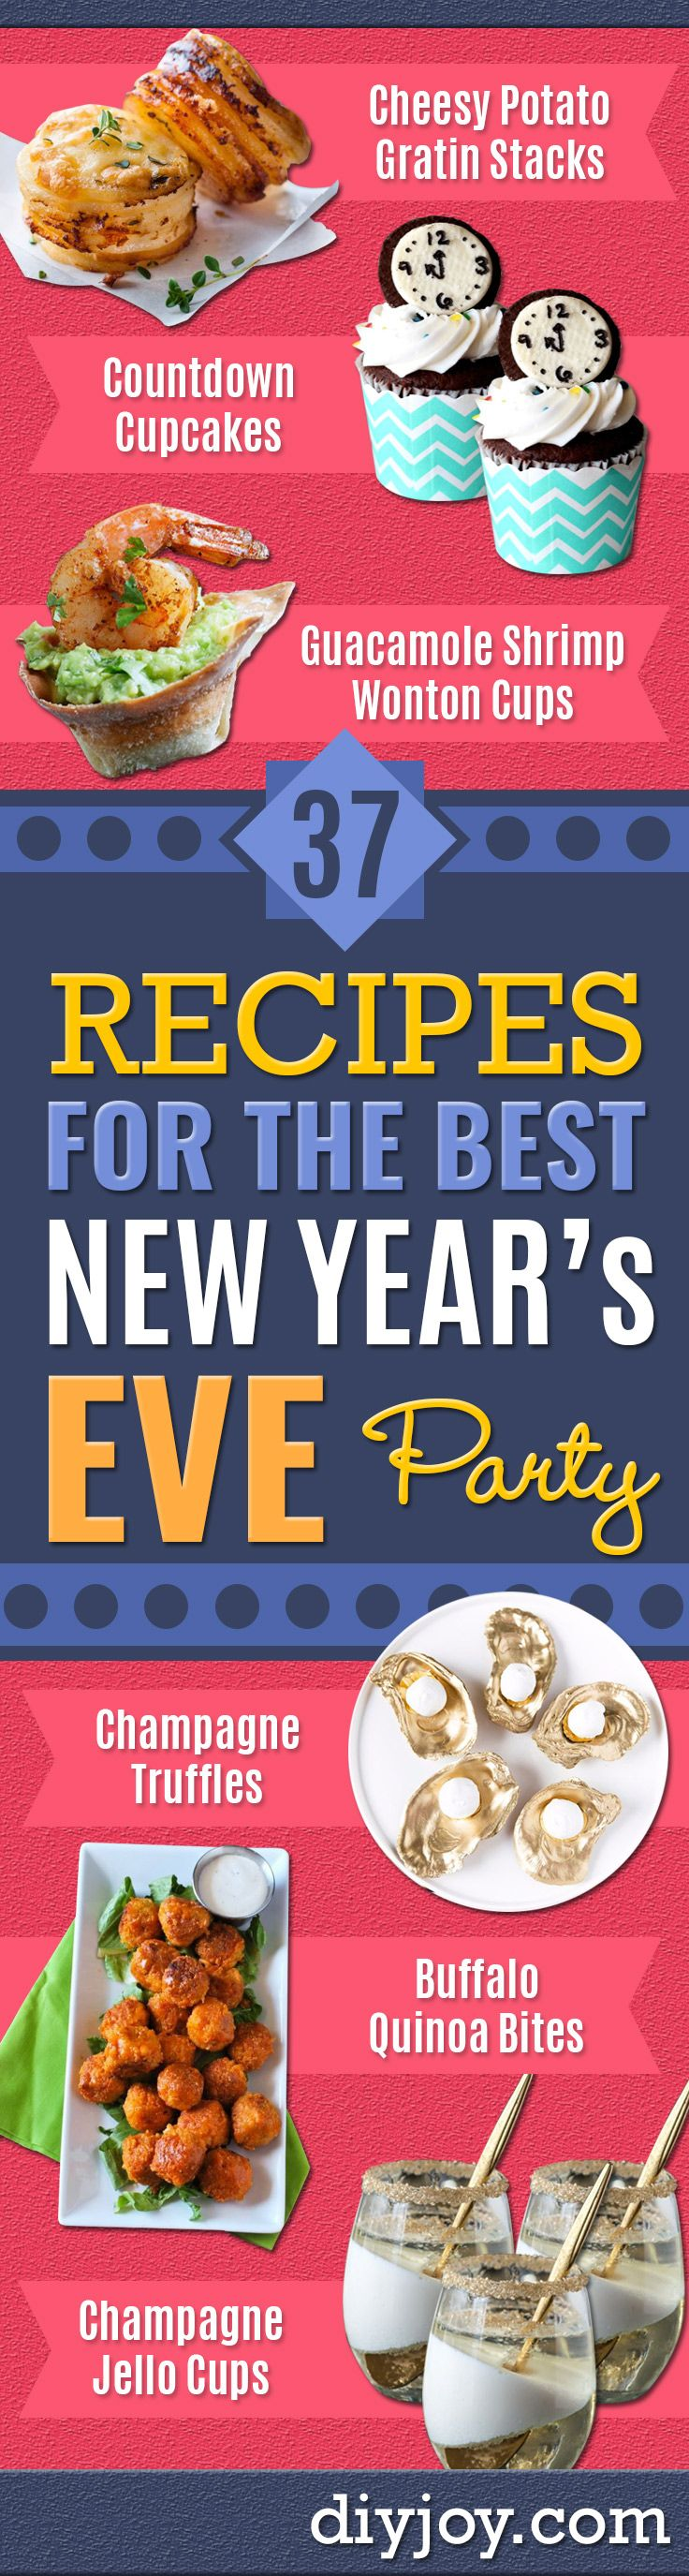 37 Recipes For A New Years Eve Party